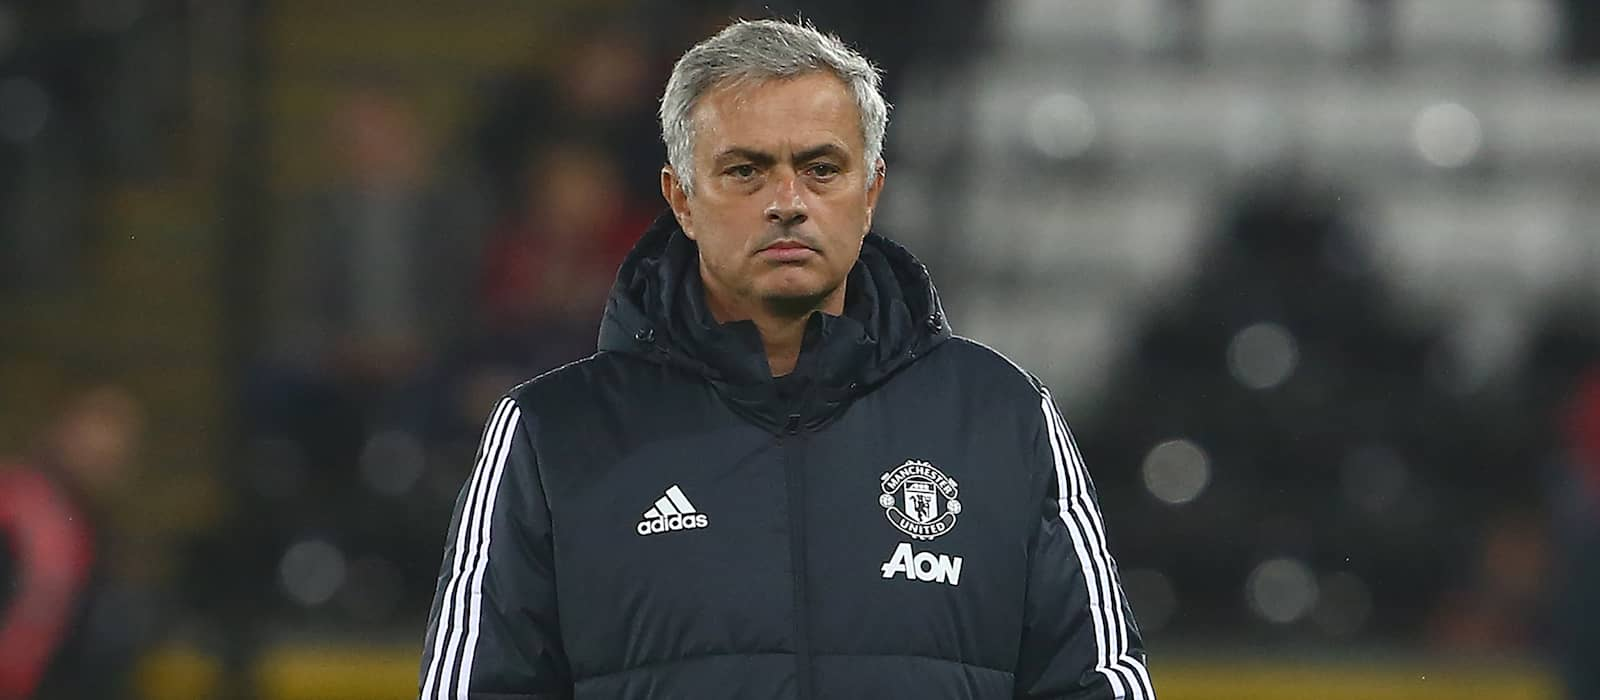 Jose Mourinho nominated for Premier League 'Manager of the Month' award